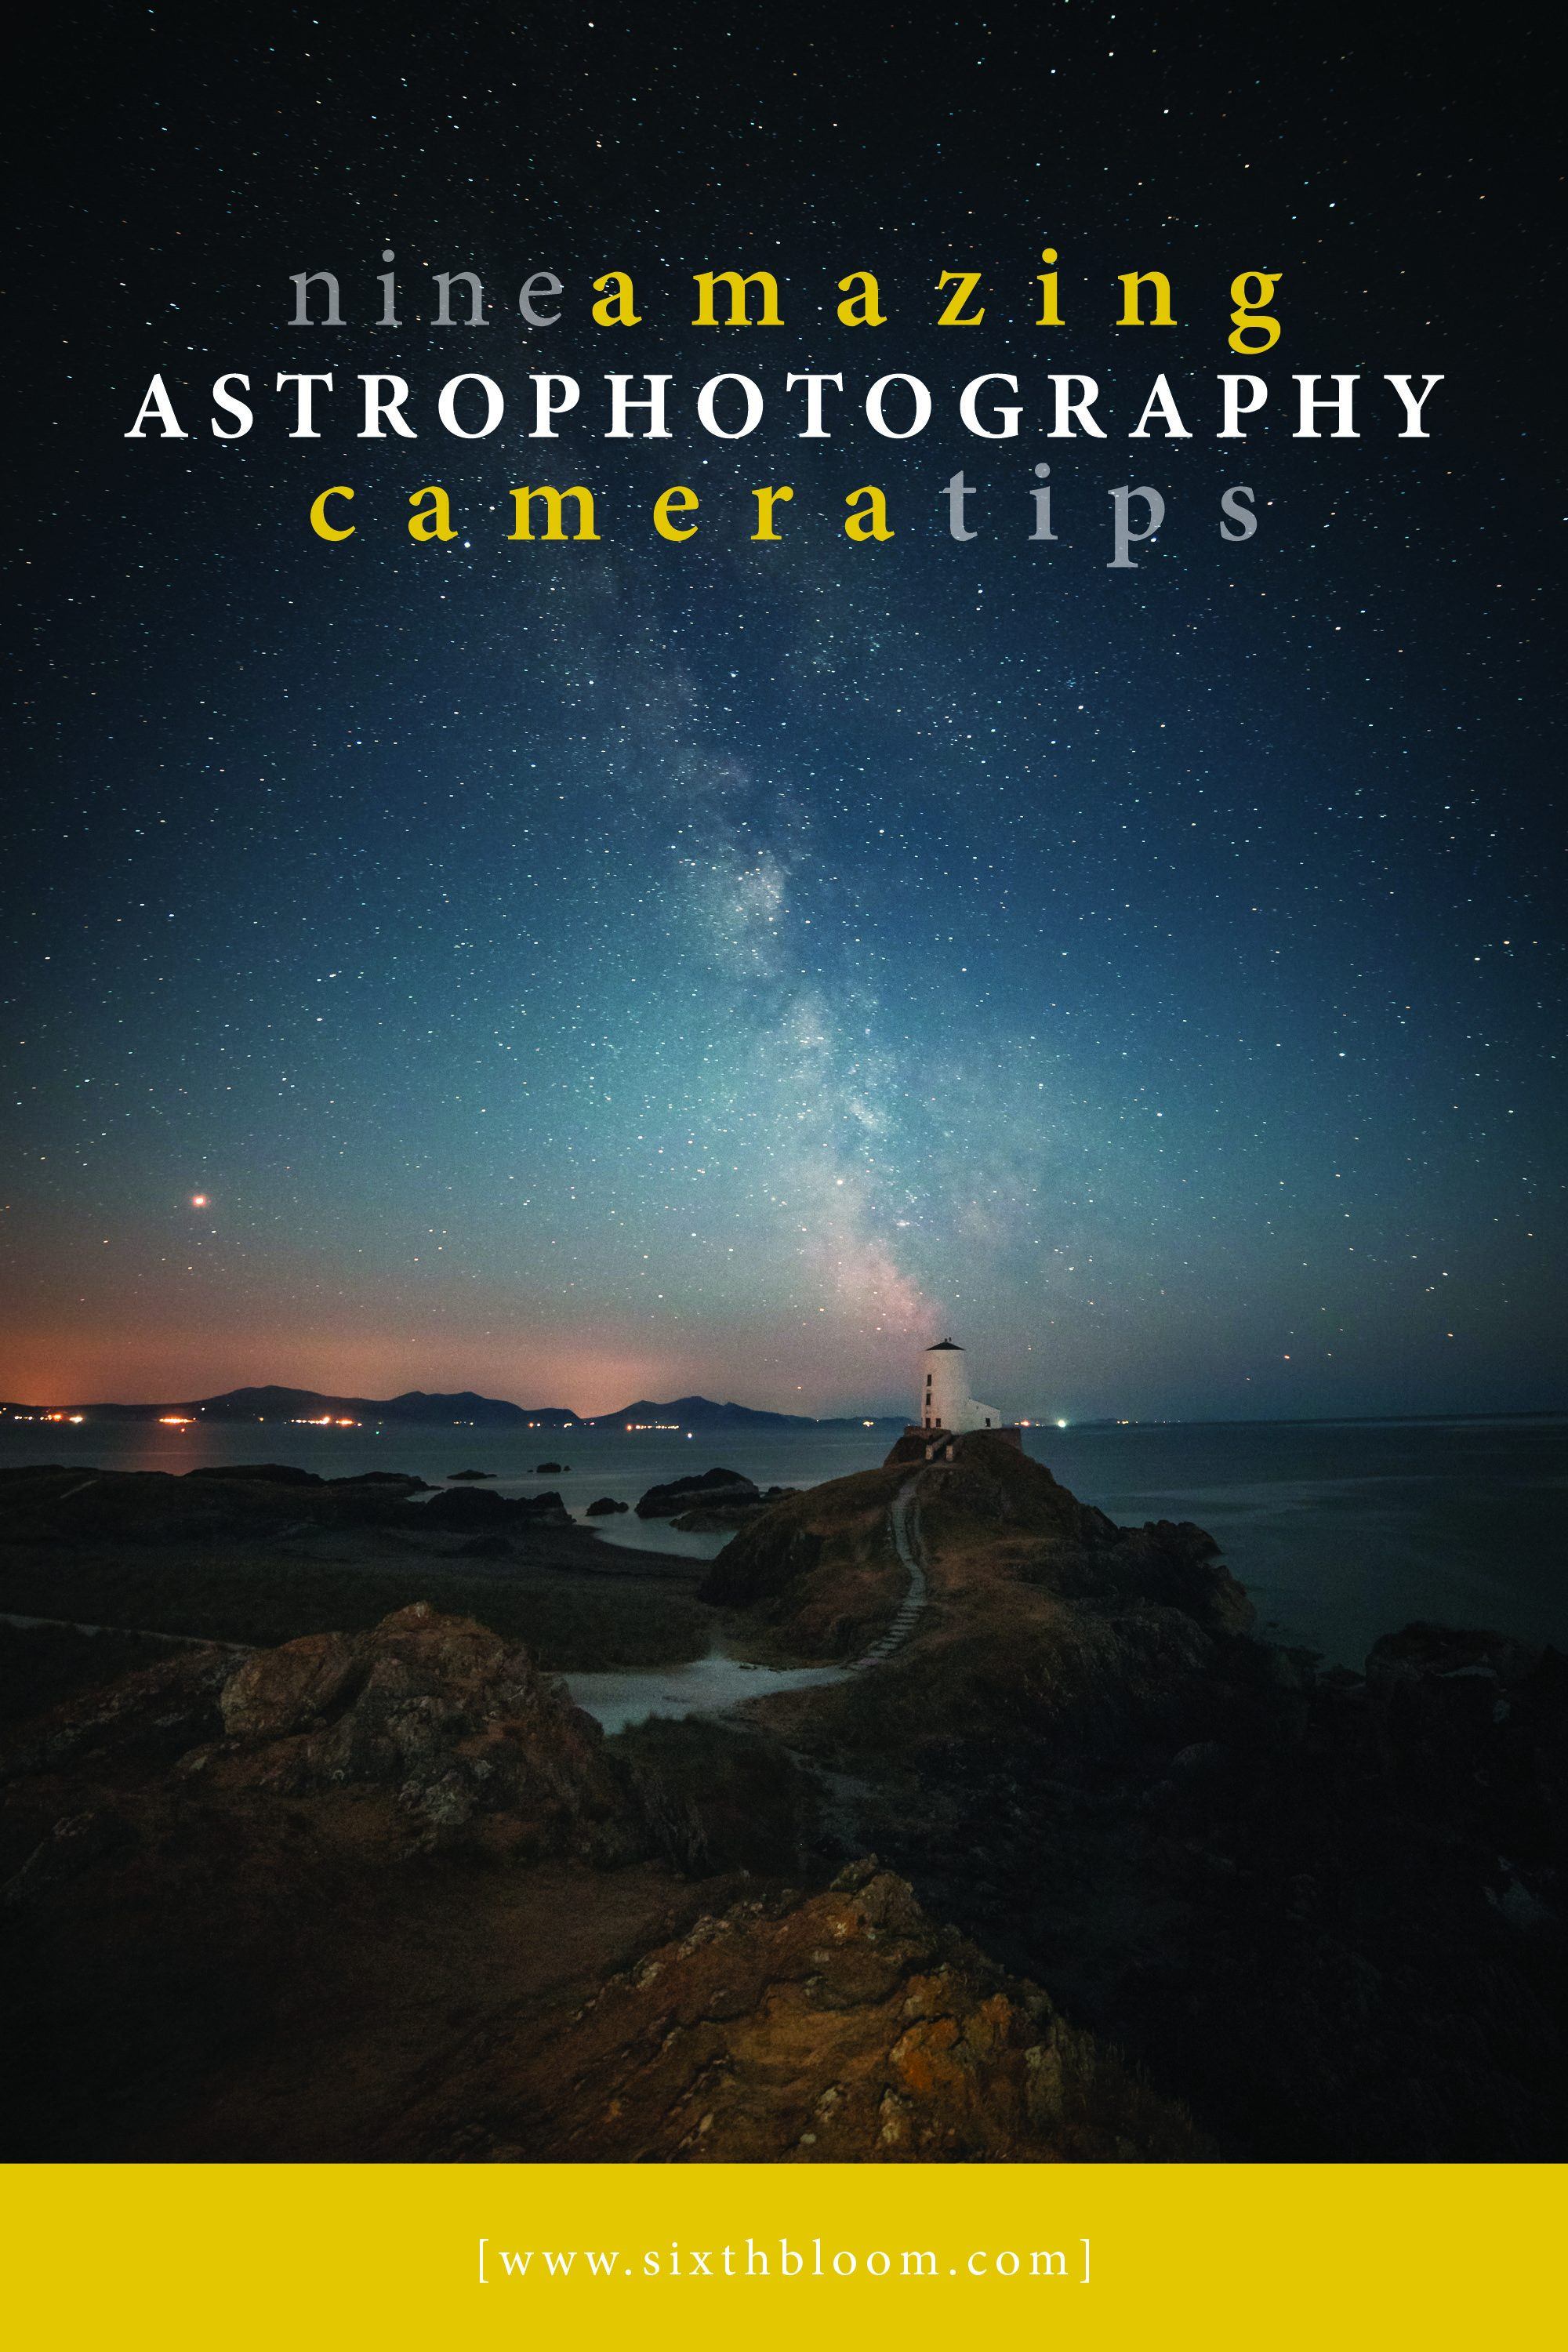 astrophotography picture of a lighthouse at night